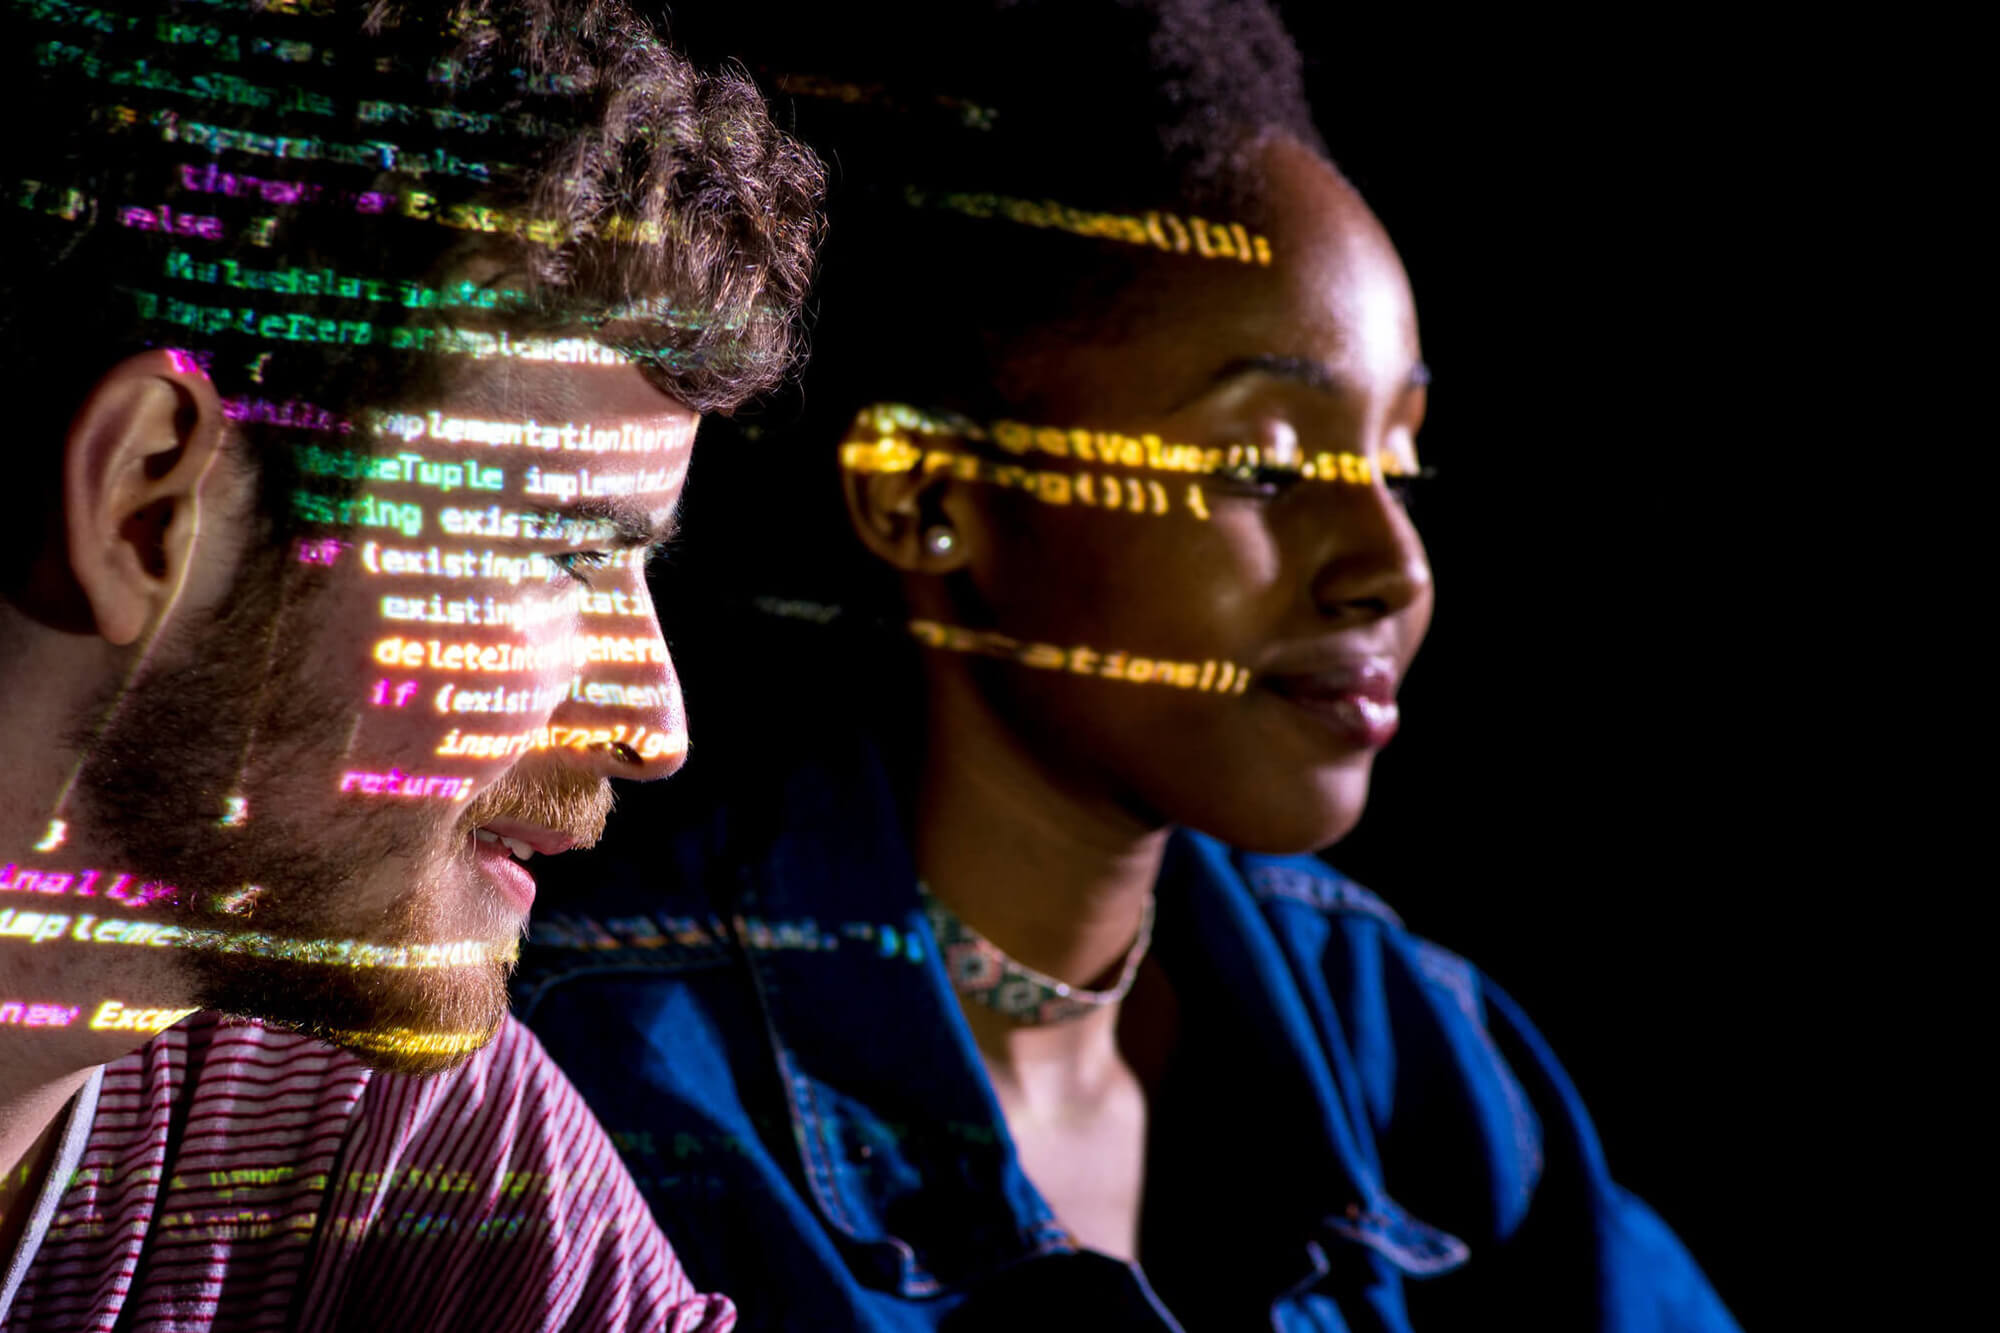 A female and male student sat working in a dark room, with a projection of their computer screen reflecting on their faces showing mathematical equations